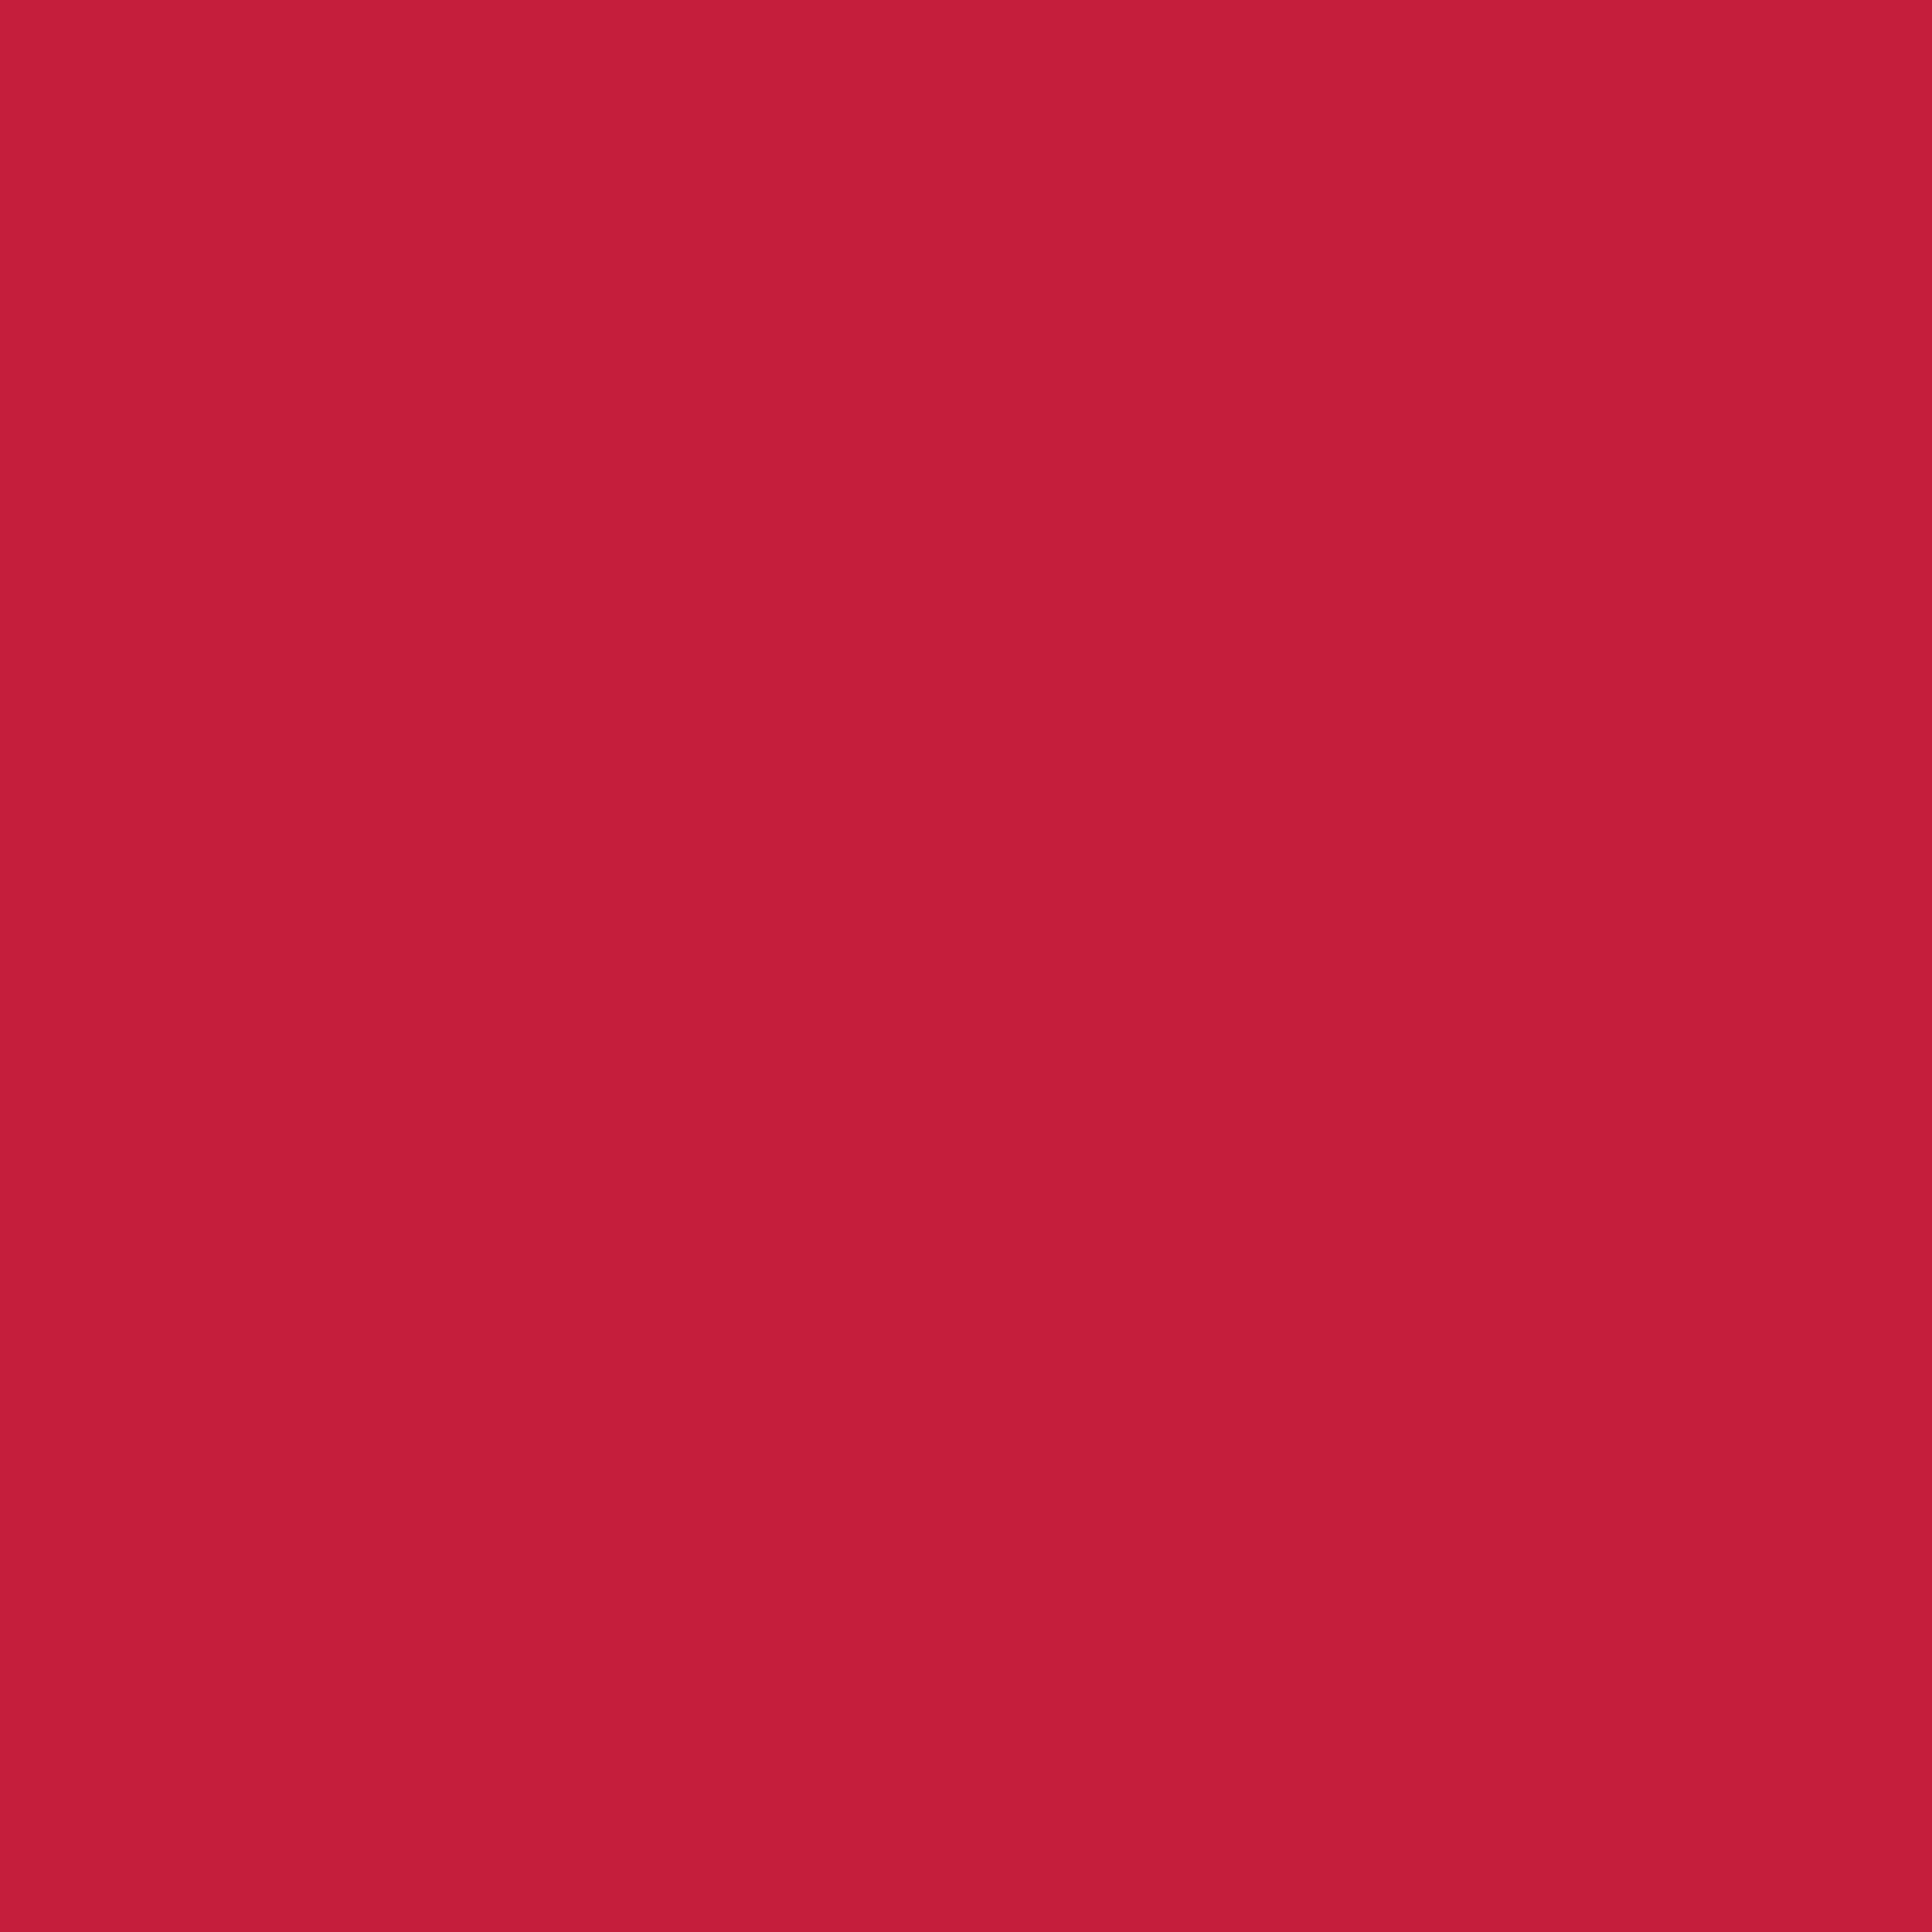 3600x3600 Cardinal Solid Color Background